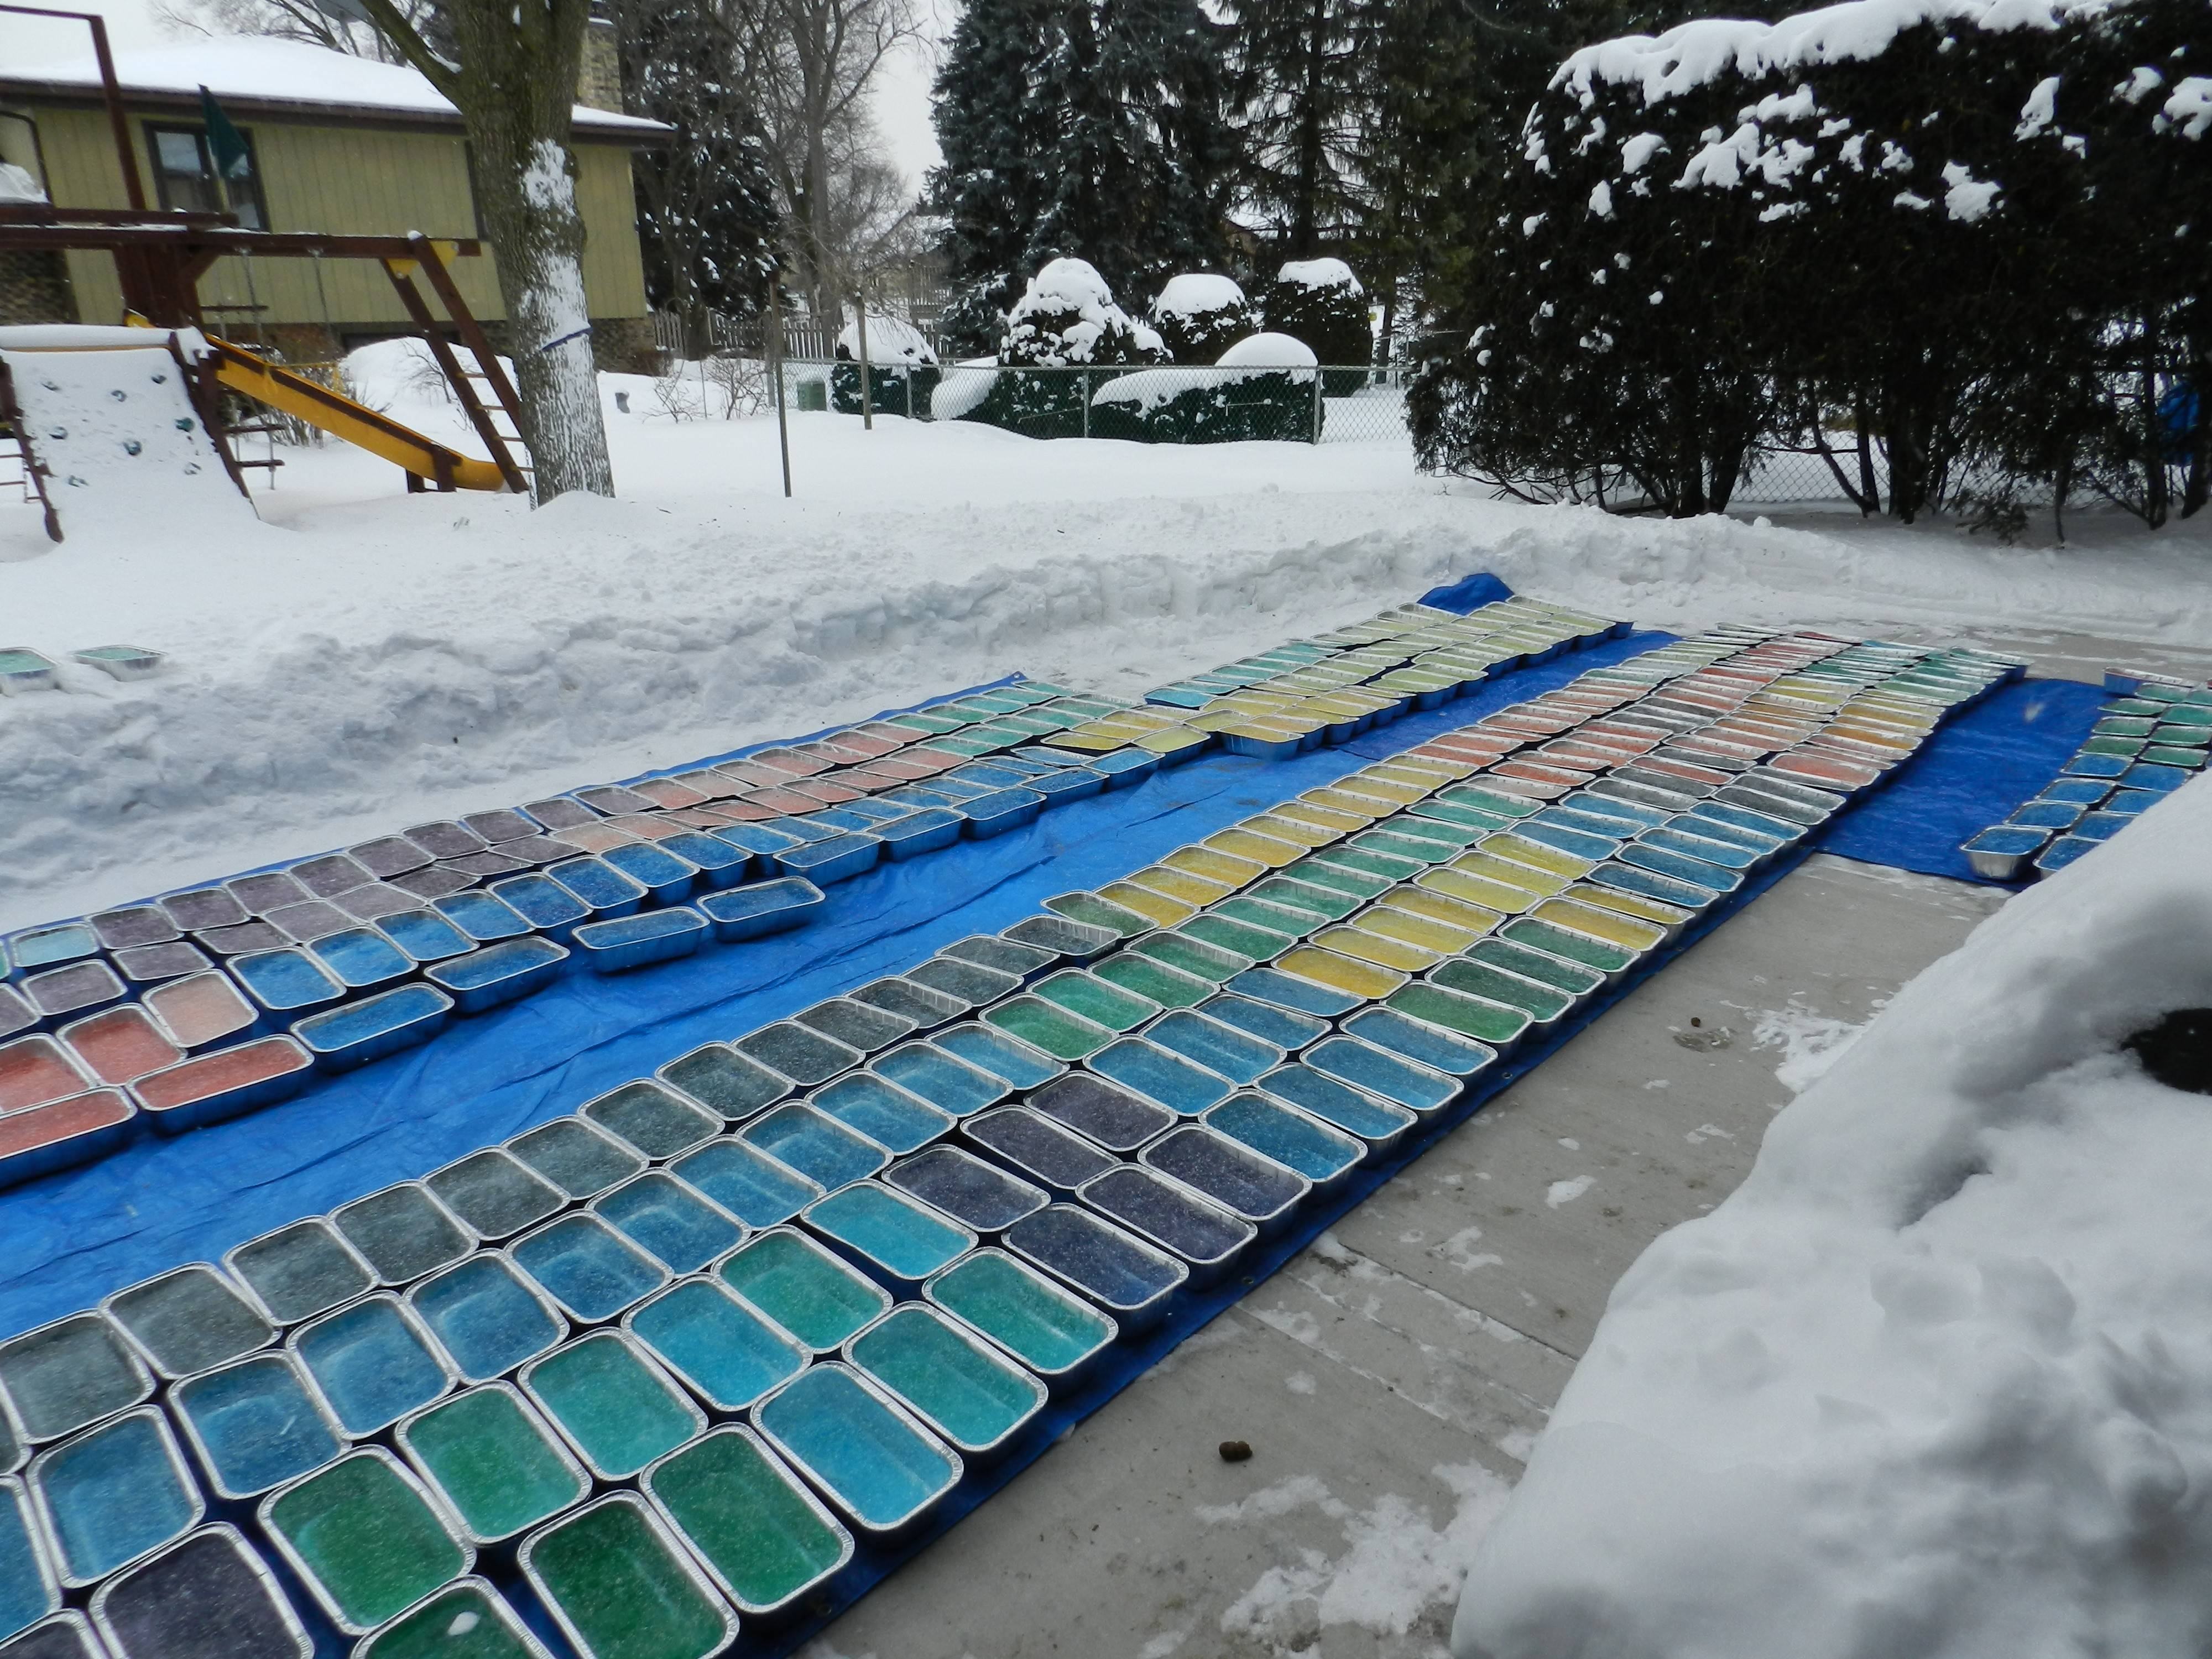 Bridgett and Meggan Grahn froze 600 six-pound bricks of ice on their mother's patio to build an igloo in the front yard.